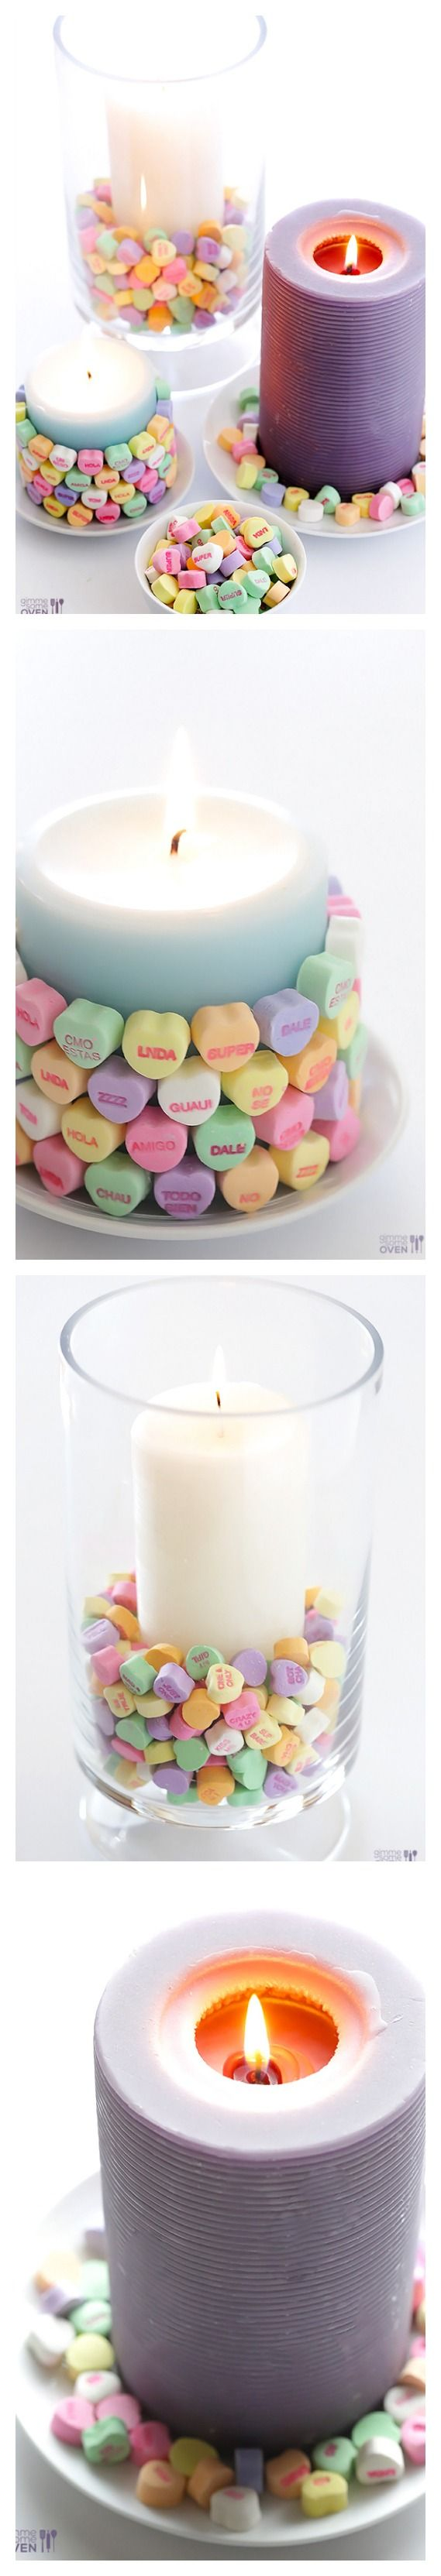 5-Minute DIY Heart Candles